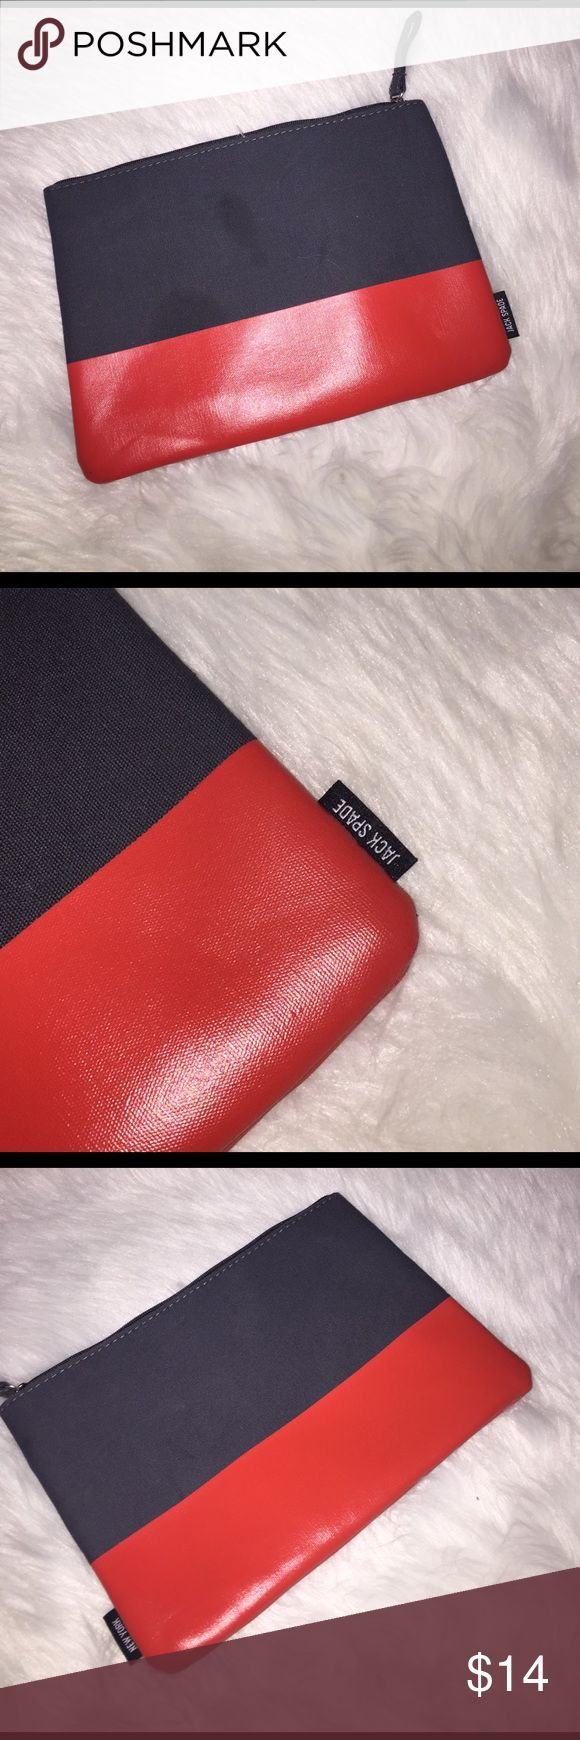 JACK Spade make up bag wristlet Jack spade, make up bag it is used in good condition, gorgeous and vibrant orange and blue in color. Jack Spade Bags Cosmetic Bags & Cases